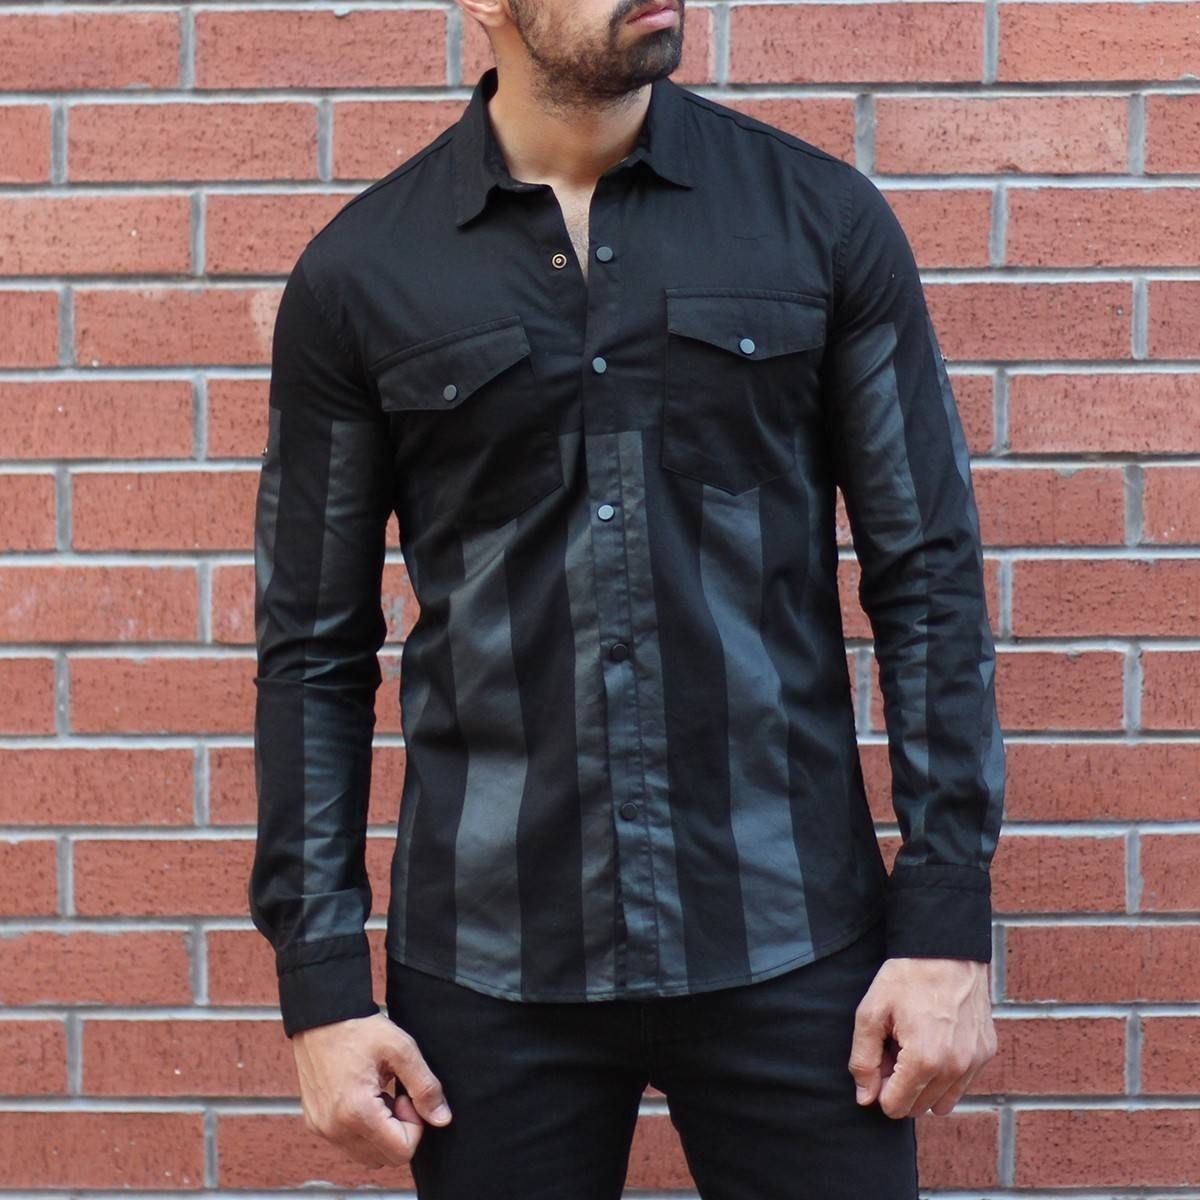 Men's Slim Fit Shirt With Pockets In Black&Gray